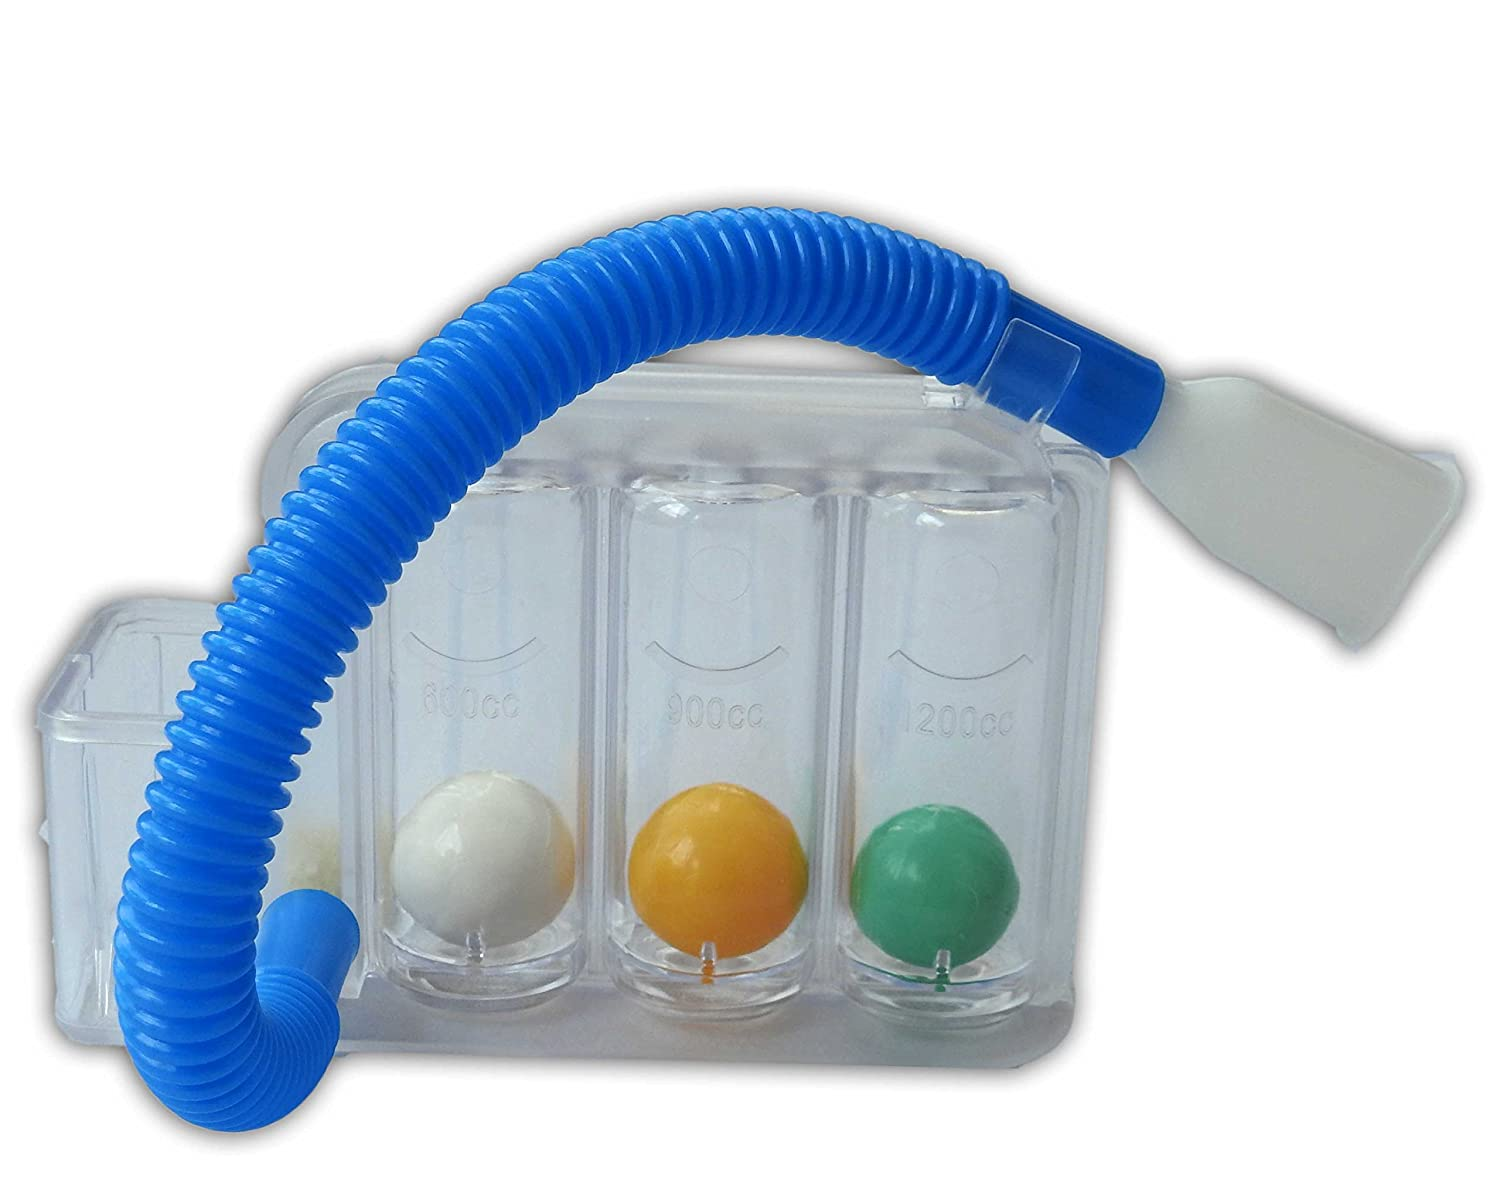 Mini wright amazon health personal care 3 ball breathing lung exerciser 3 ball incentive spirometer nvjuhfo Choice Image